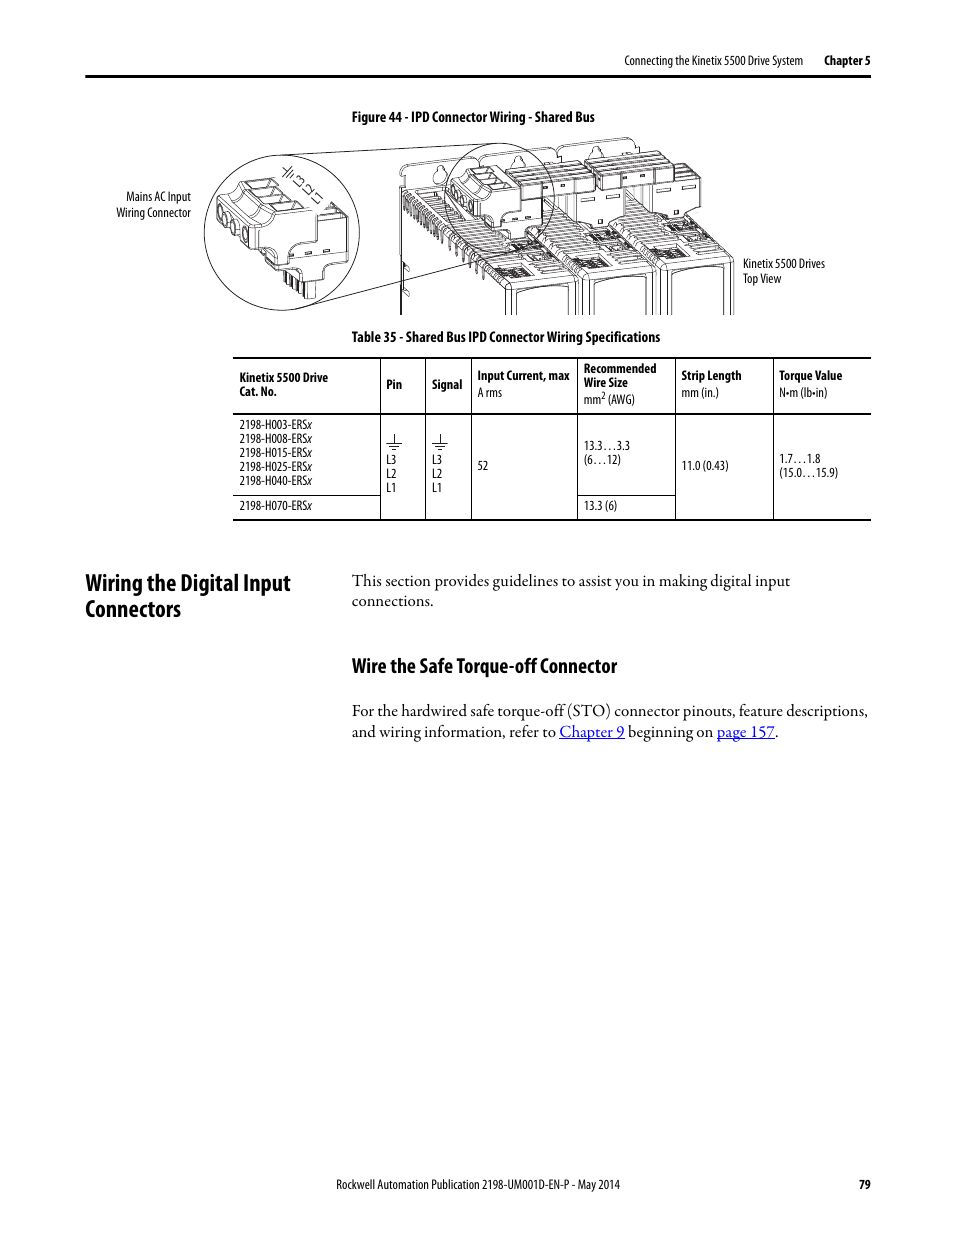 Powerflex 755 Safe Torque Off Wiring Electrical Diagrams 8 Wire Diagram Kinetix 5500 Trusted